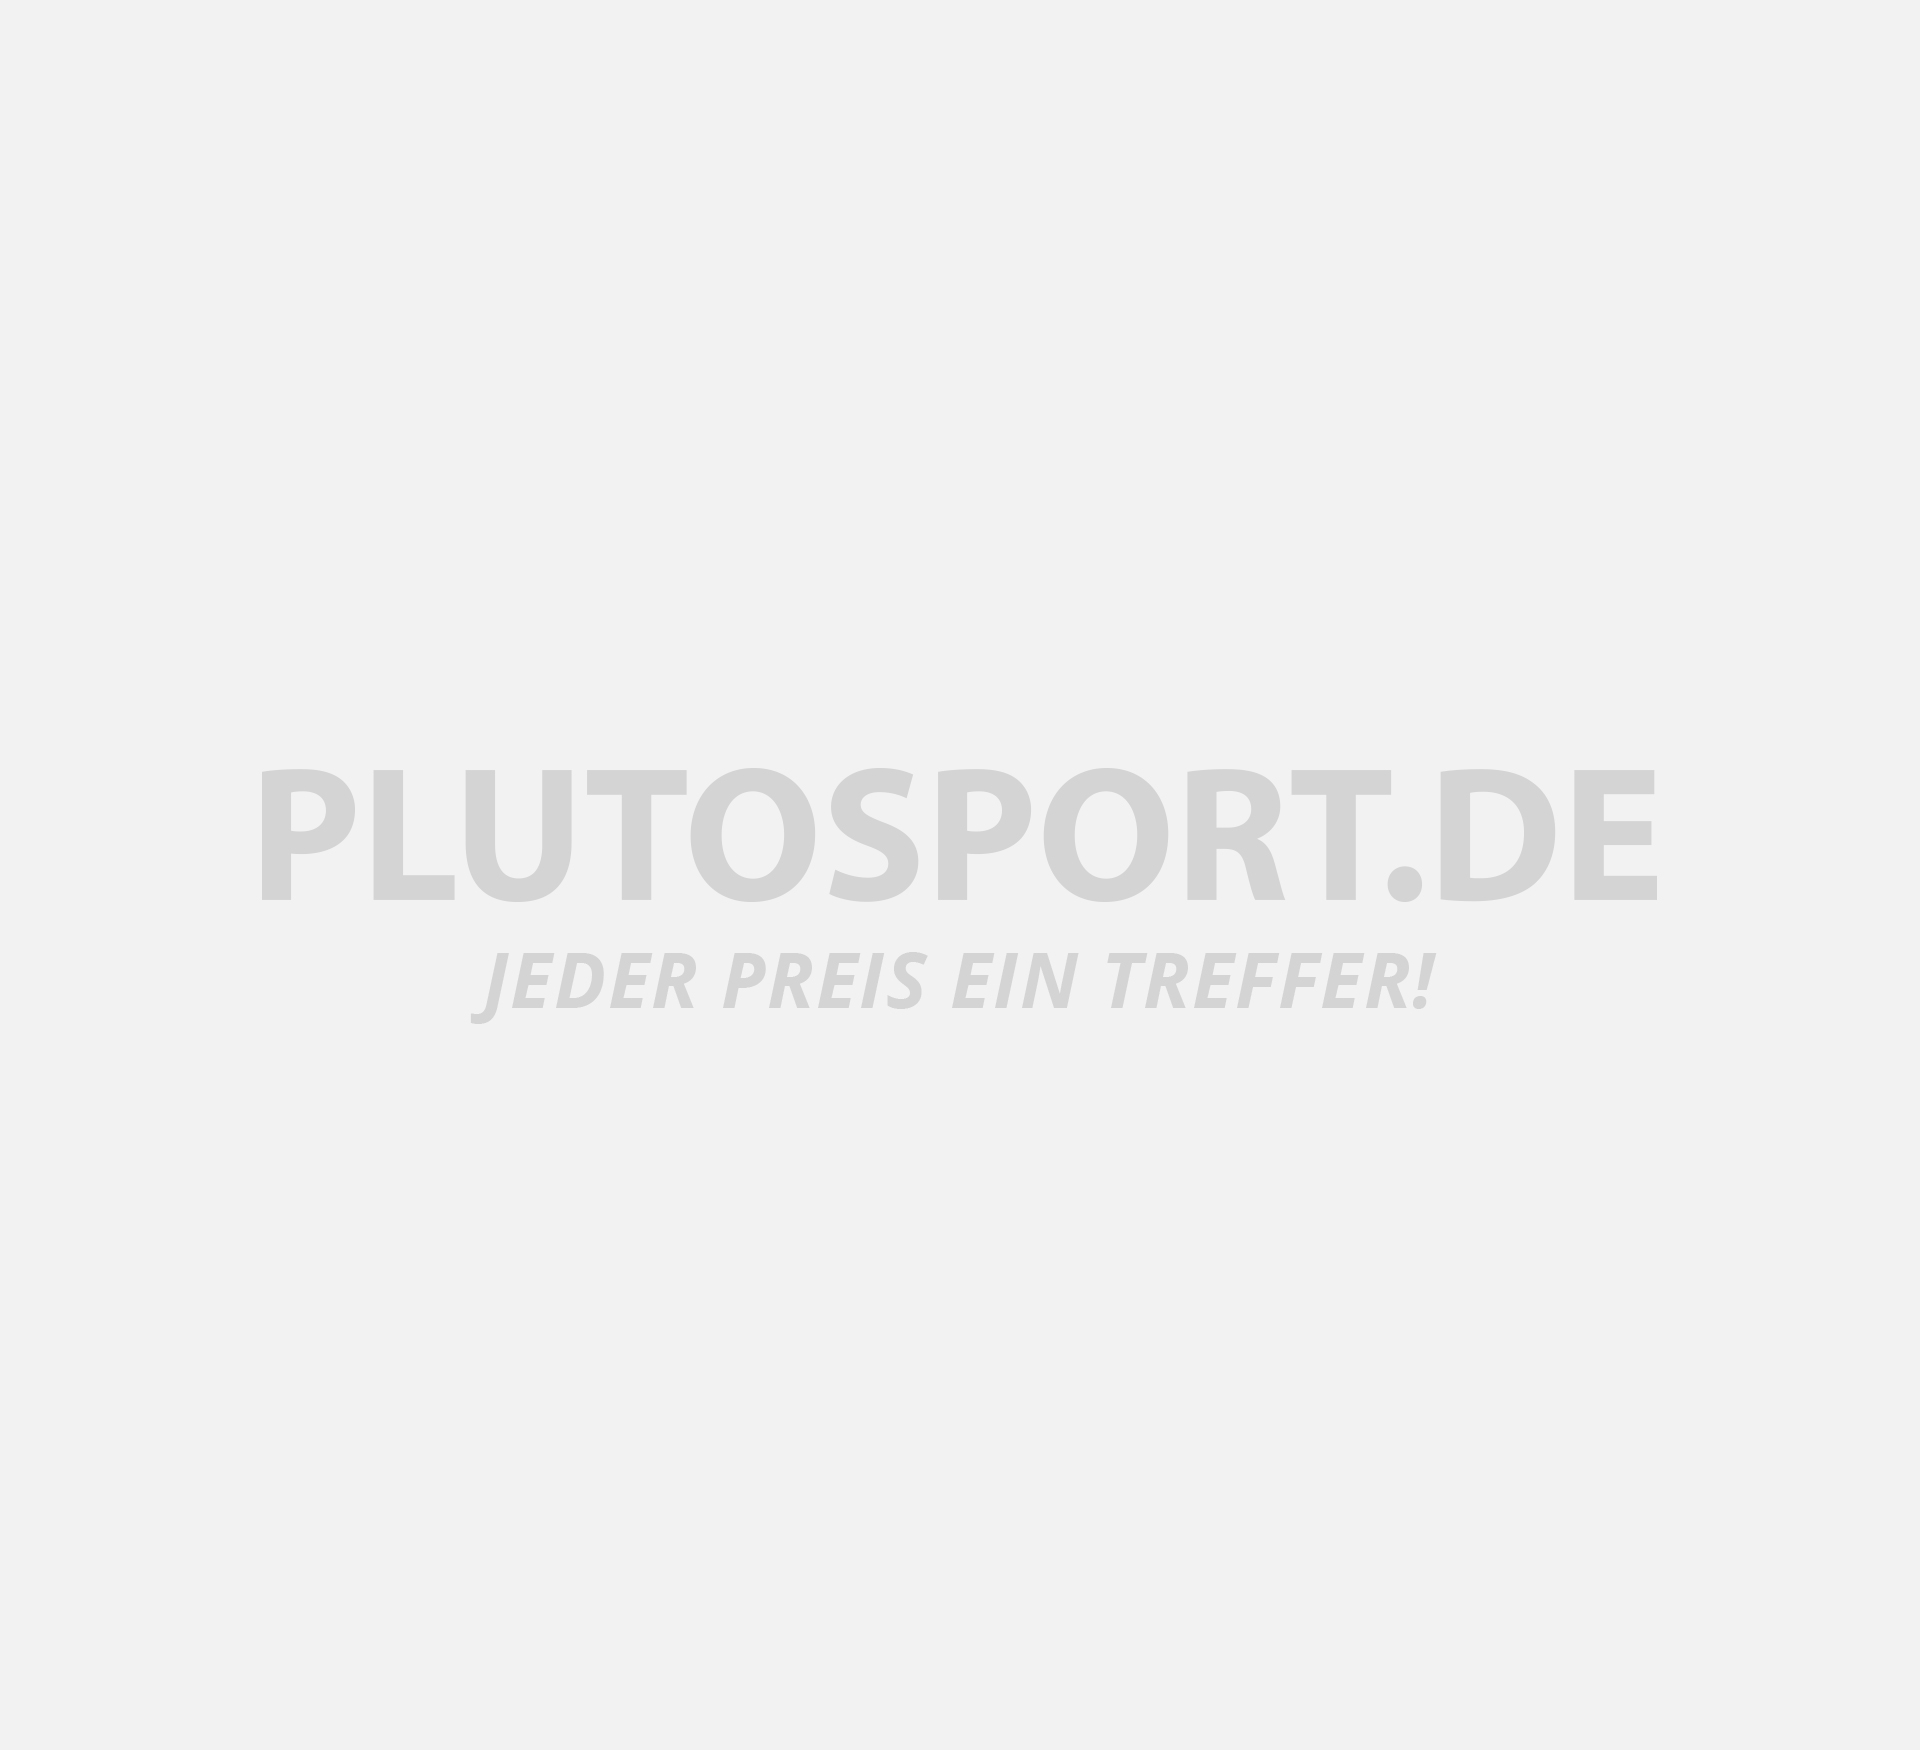 Jack & Jones Bali Safari Schwimmshort Herren